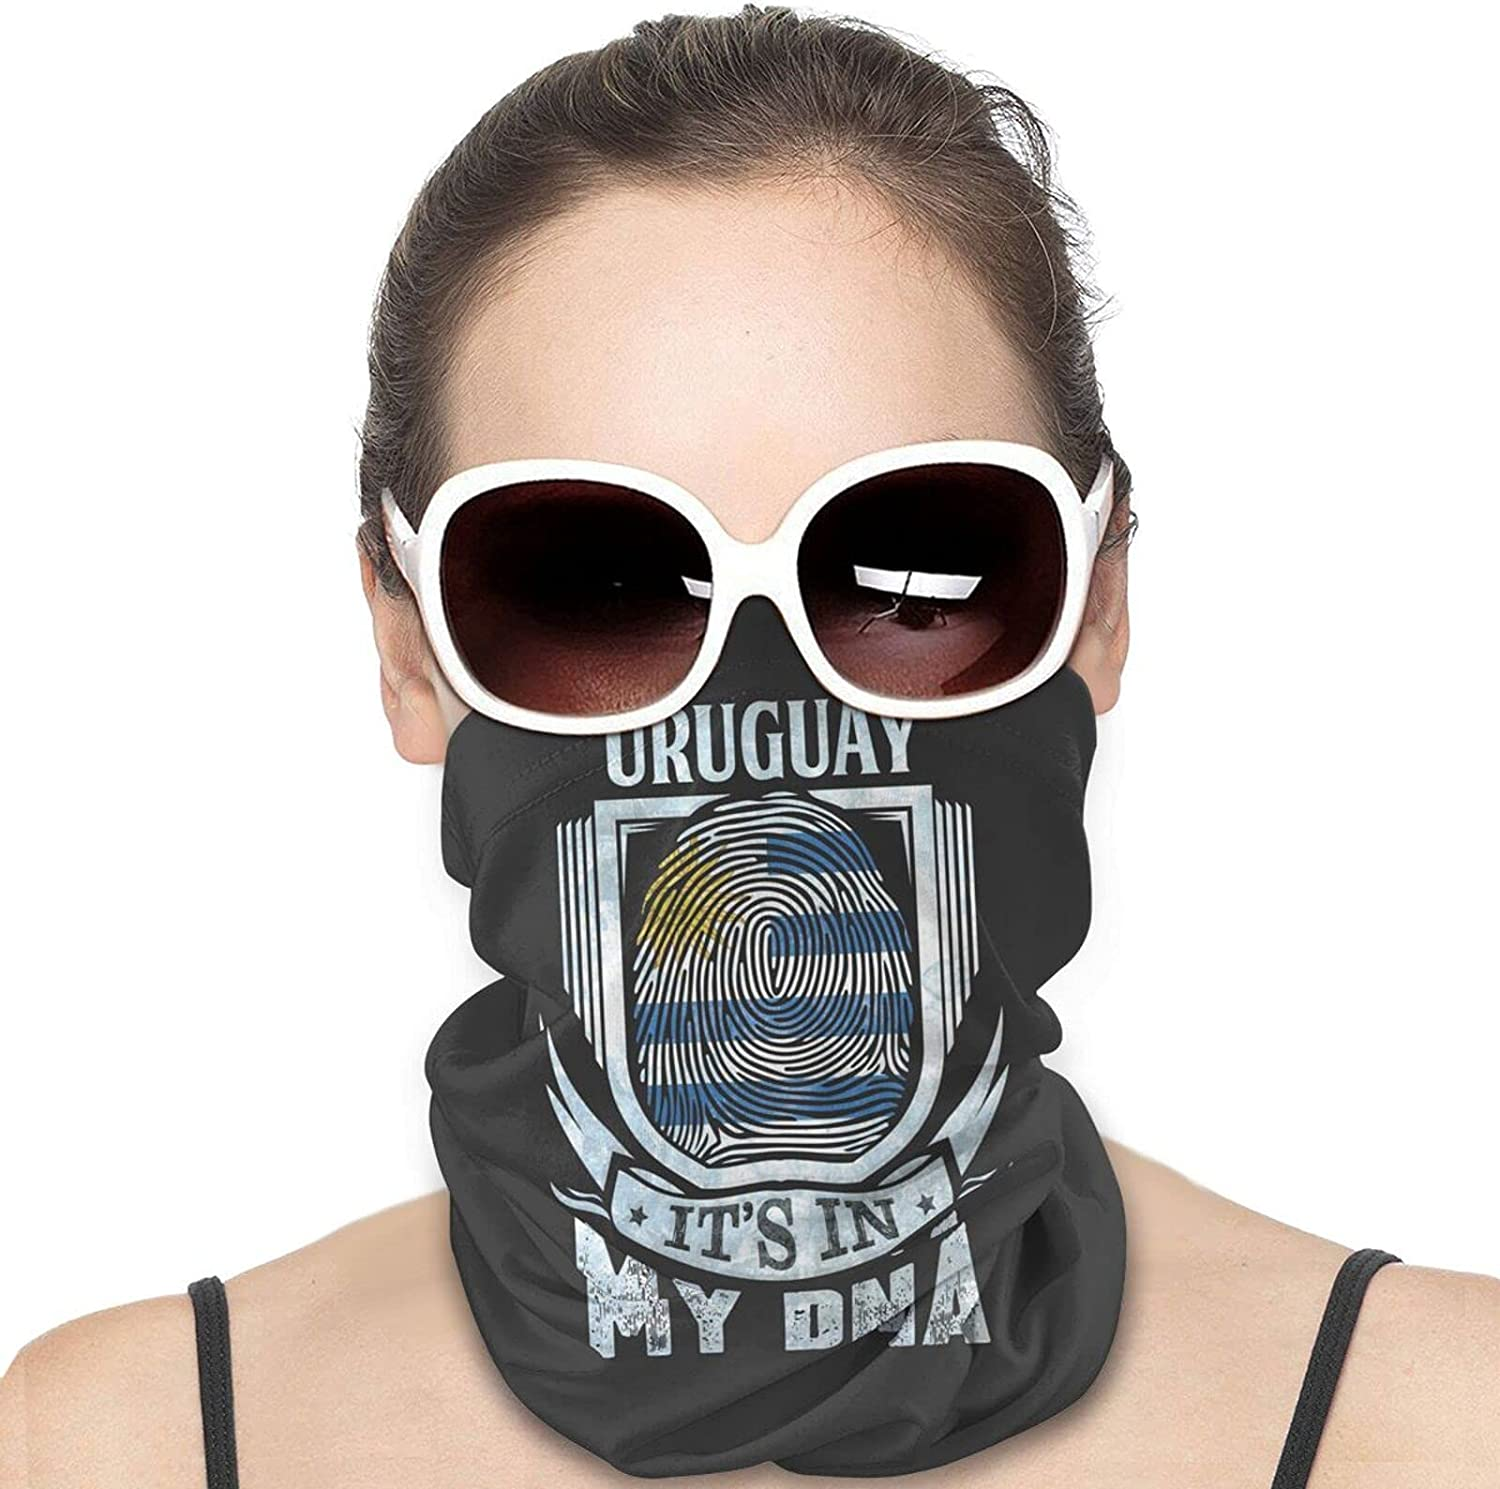 Its In My Dna Uruguay Flag Round Neck Gaiter Bandnas Face Cover Uv Protection Prevent bask in Ice Scarf Headbands Perfect for Motorcycle Cycling Running Festival Raves Outdoors